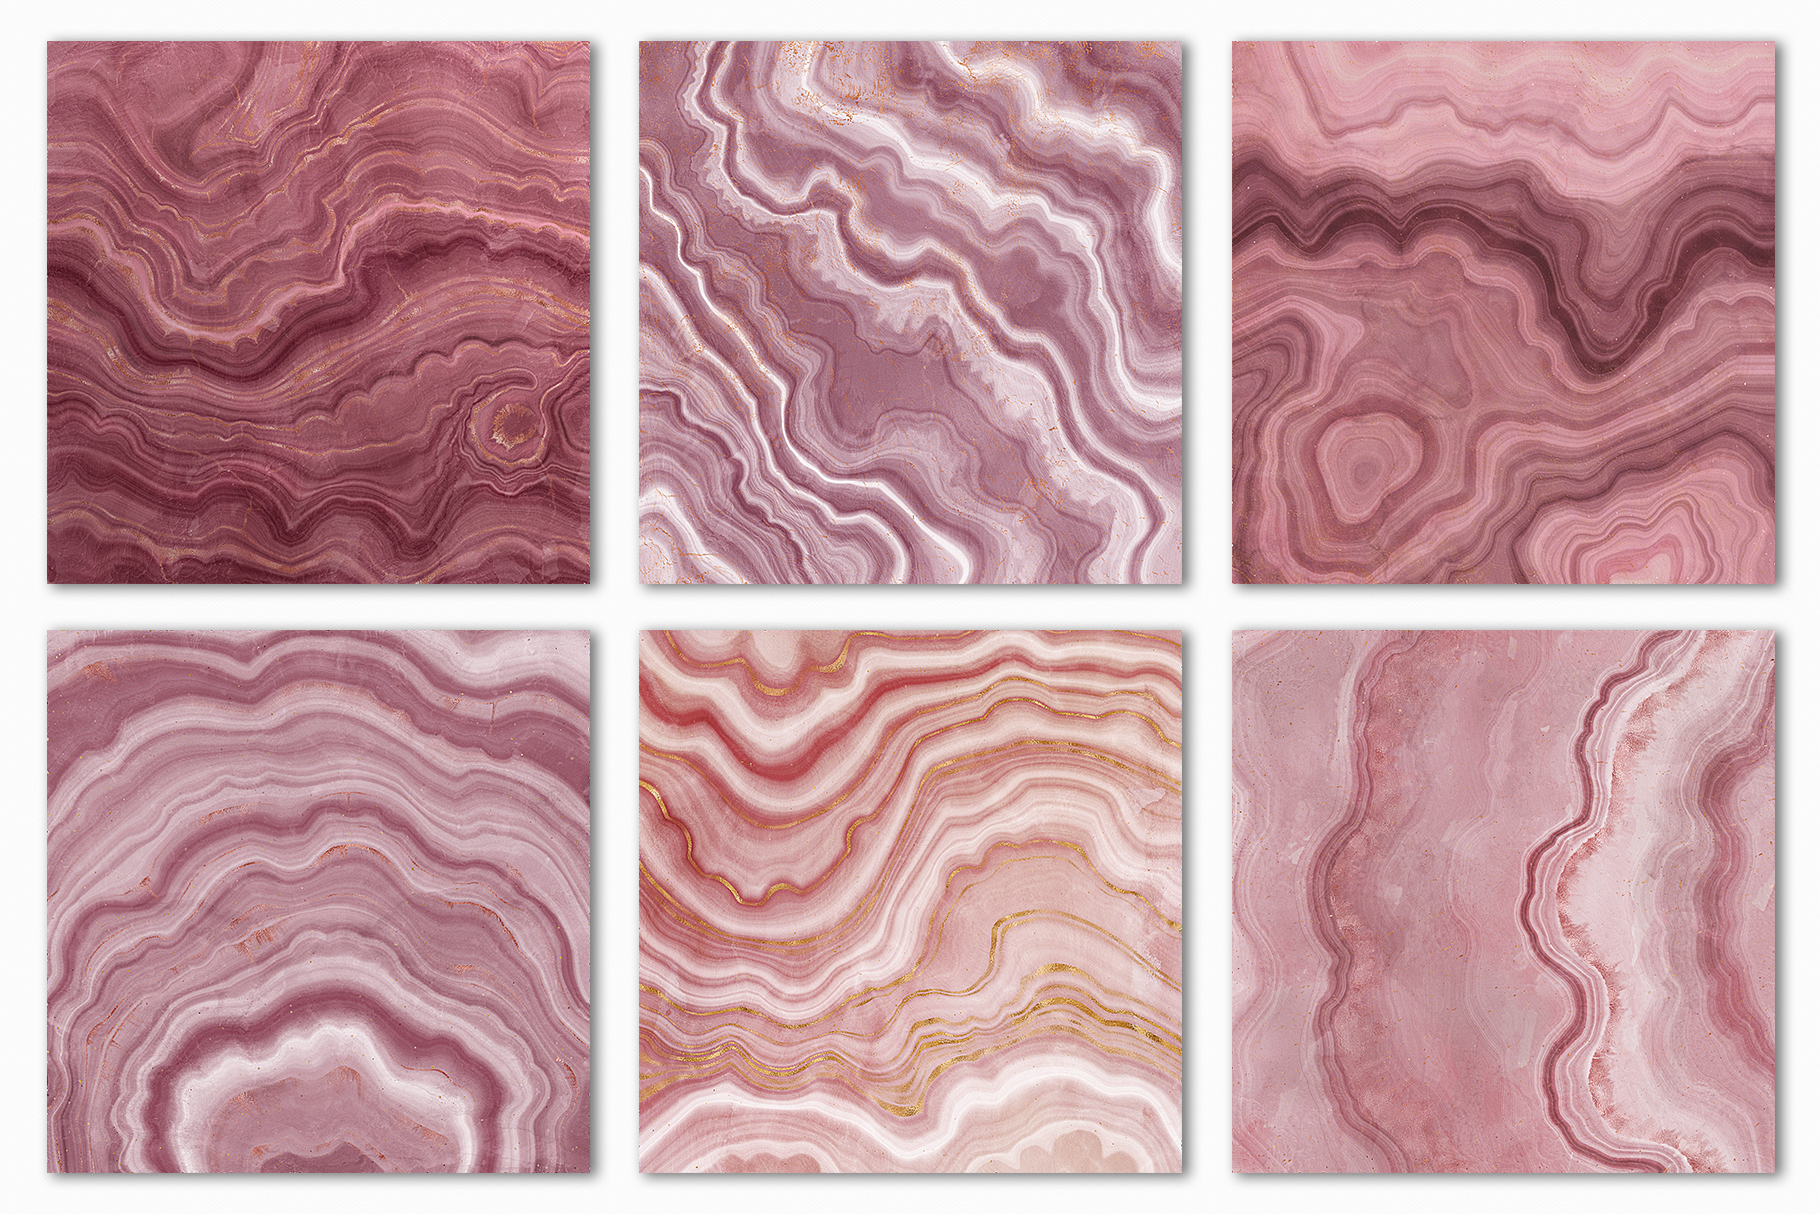 Pink Agate Illustrations, Textures & Patterns example image 8